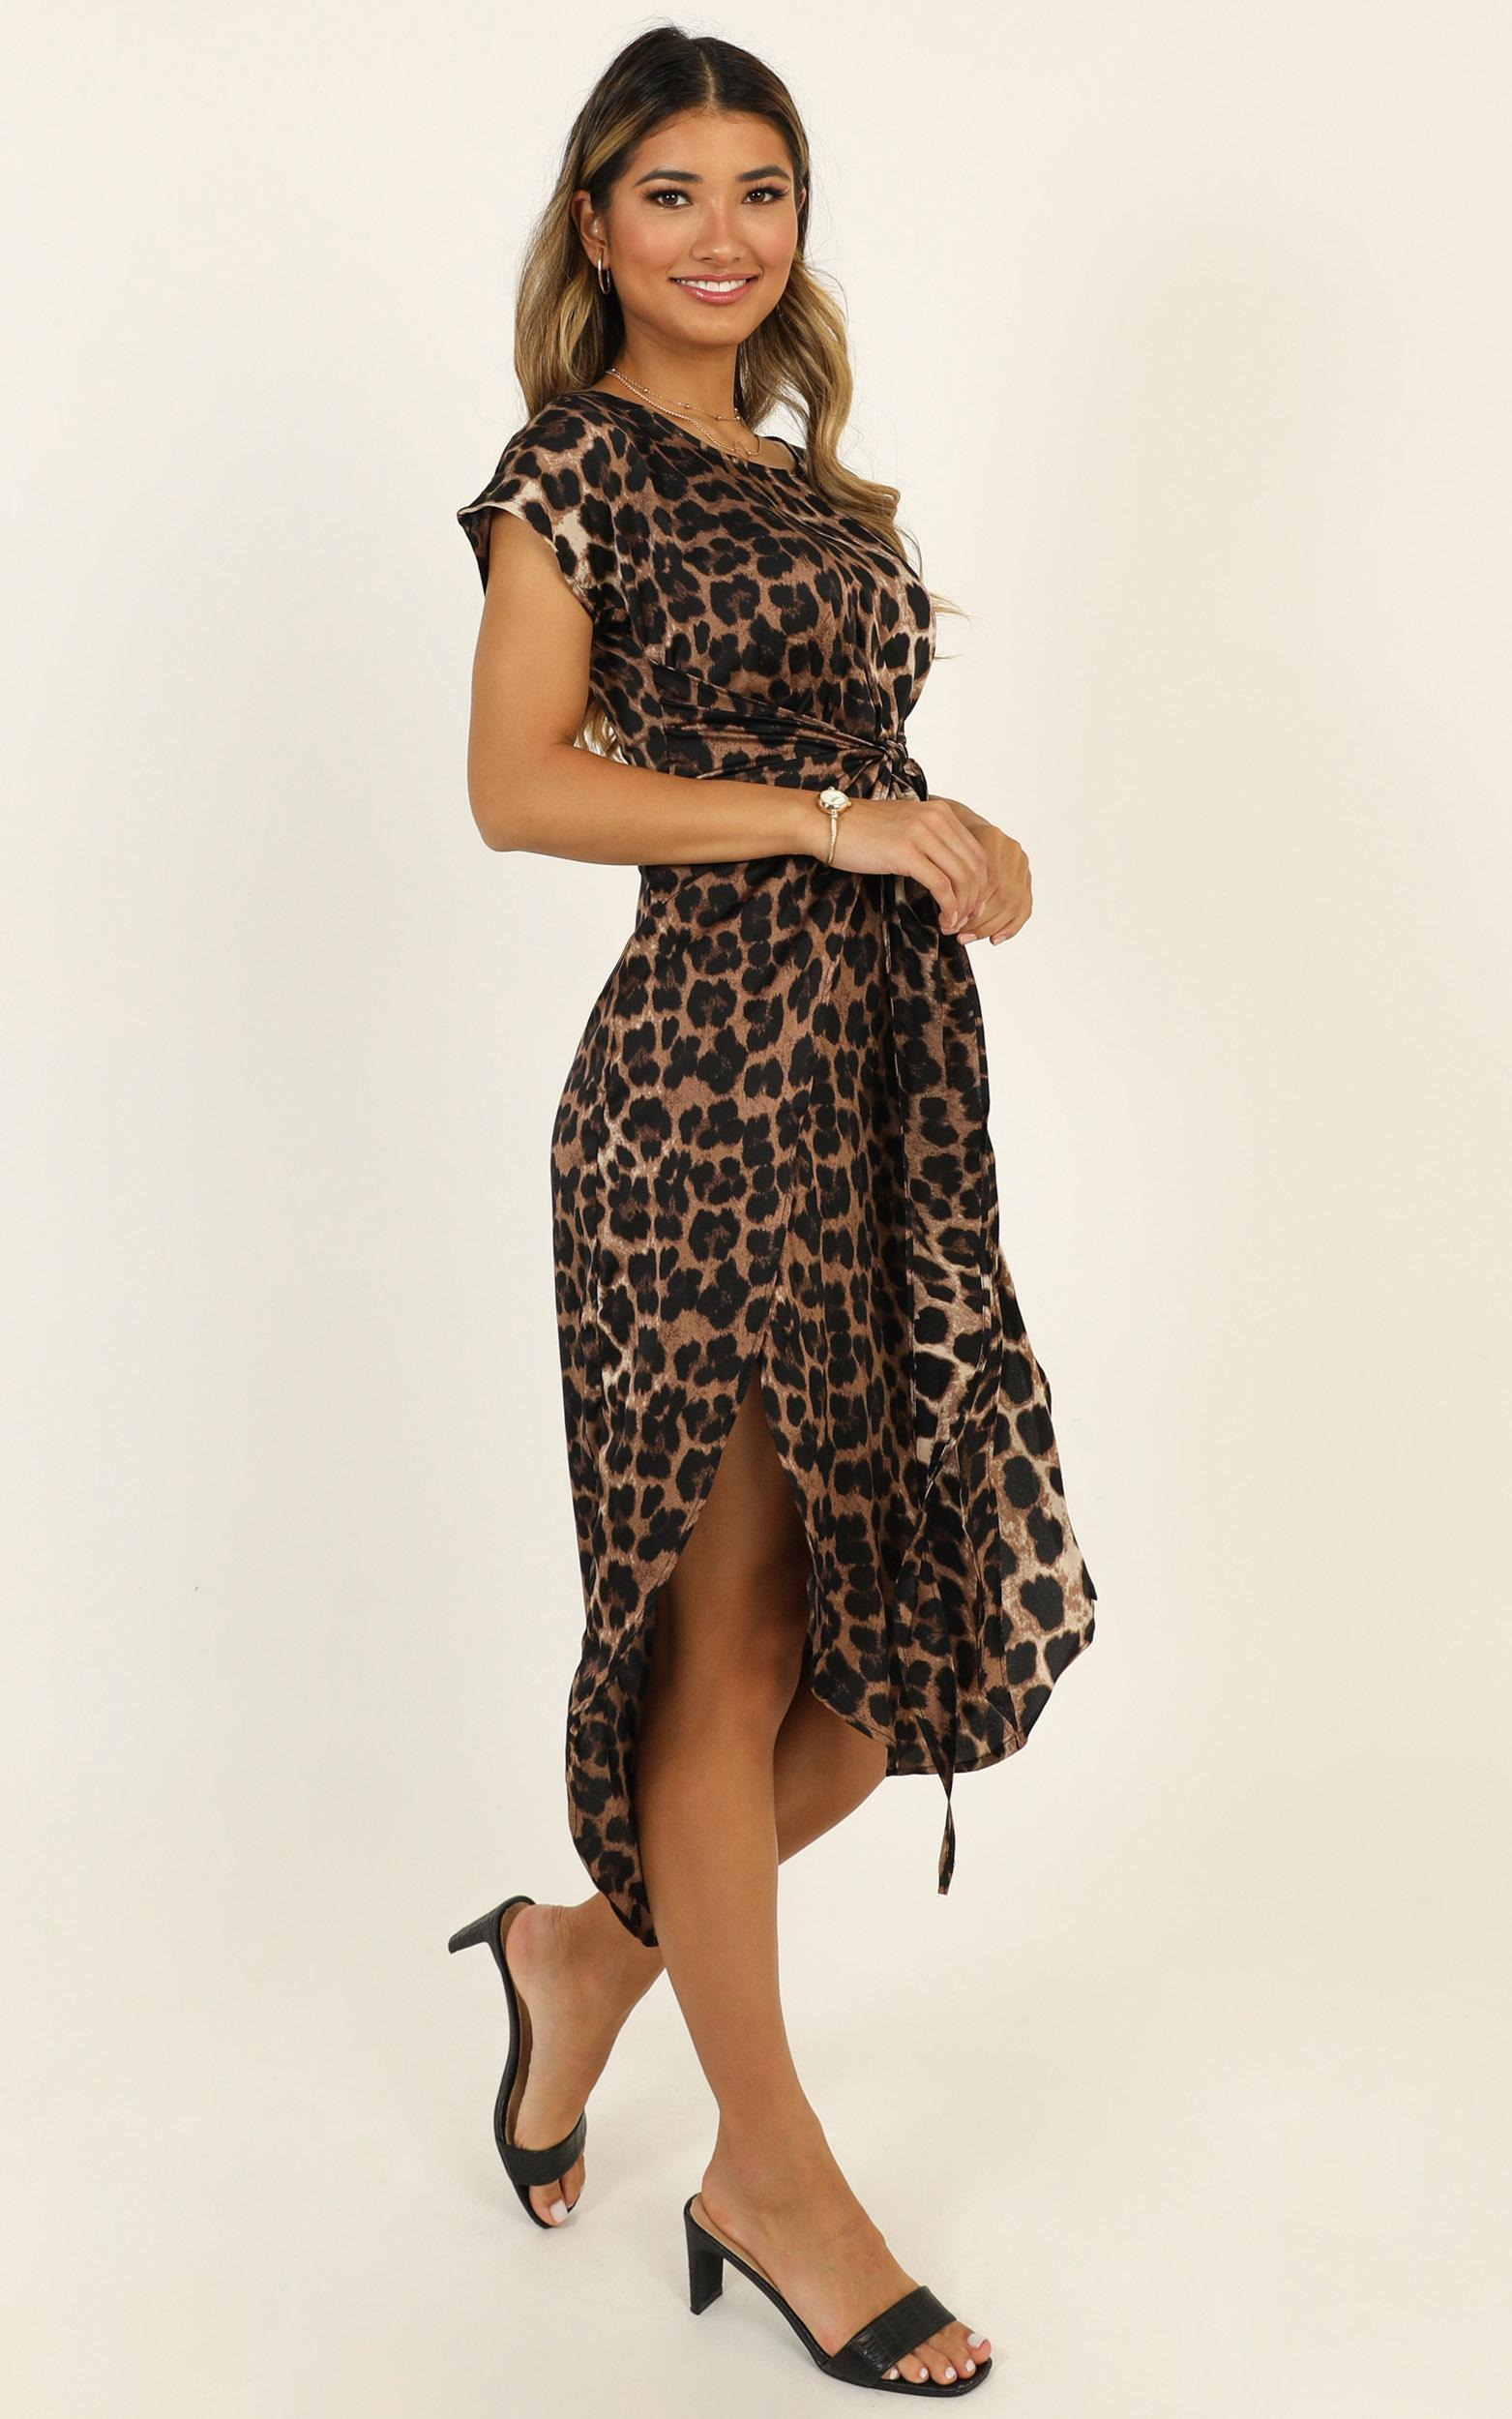 Woman In Power Dress in leopard print - 20 (XXXXL), Mocha, hi-res image number null